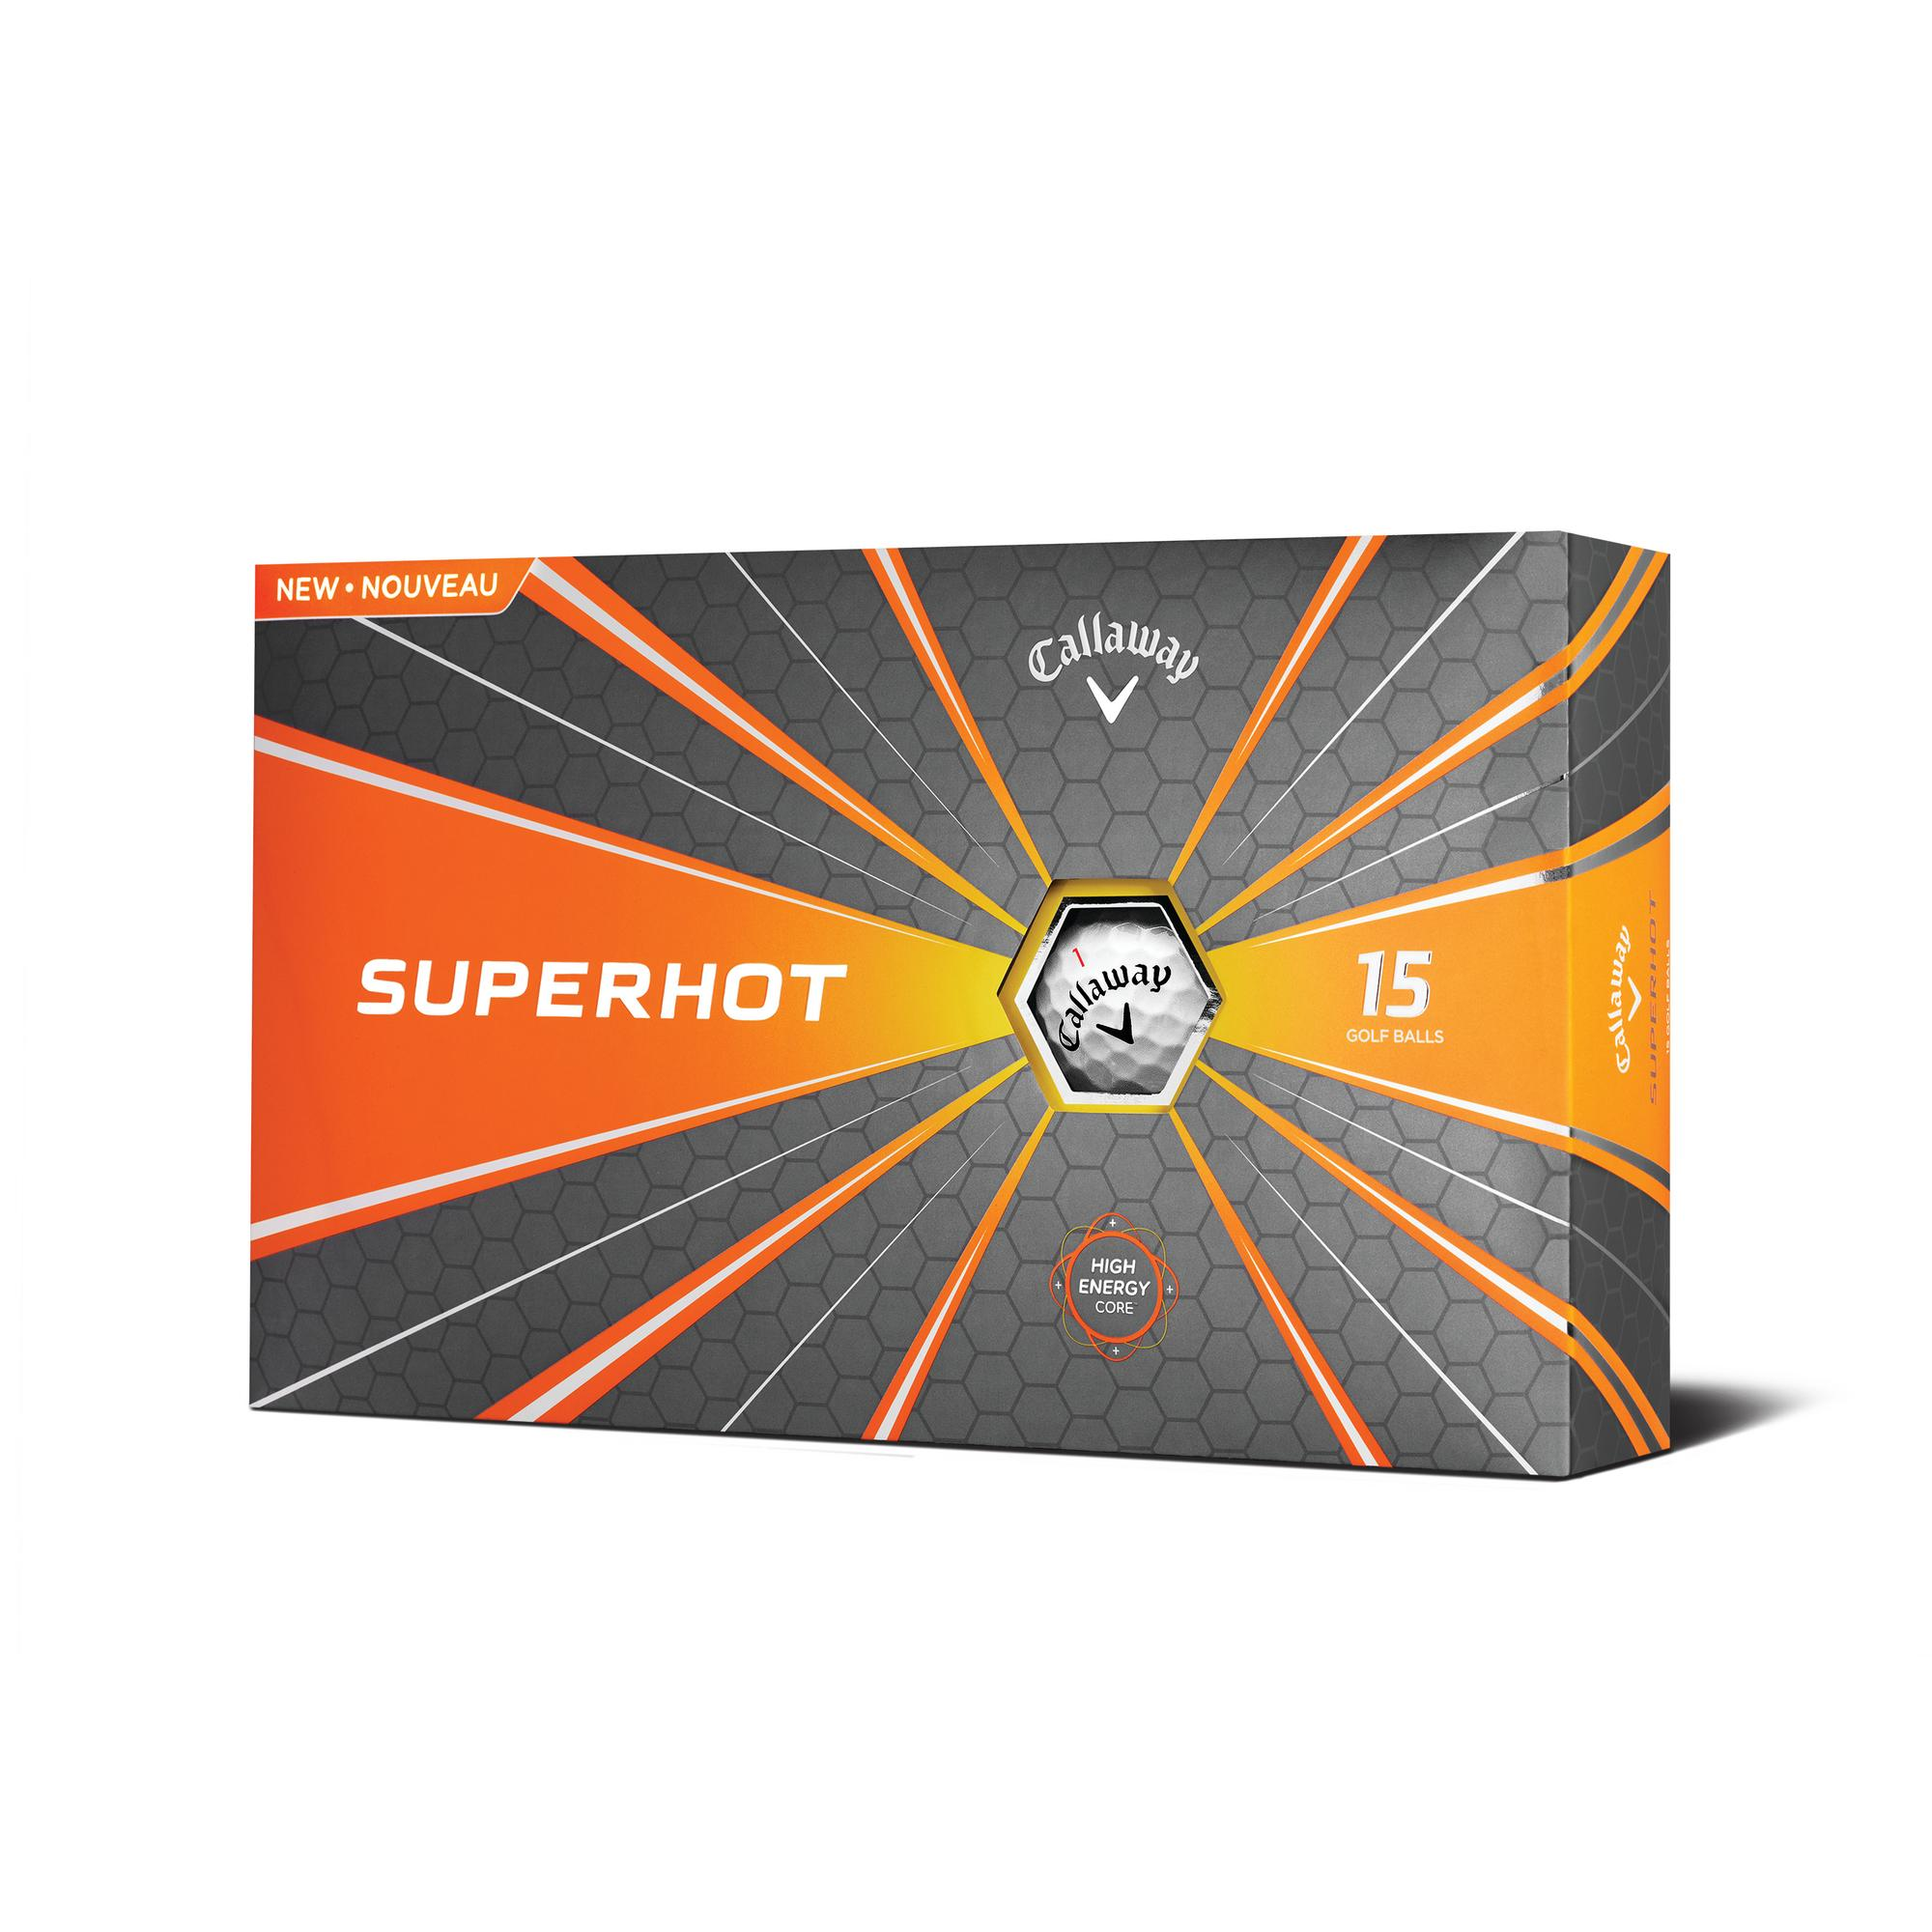 2018 Superhot Golf Balls - 15PK